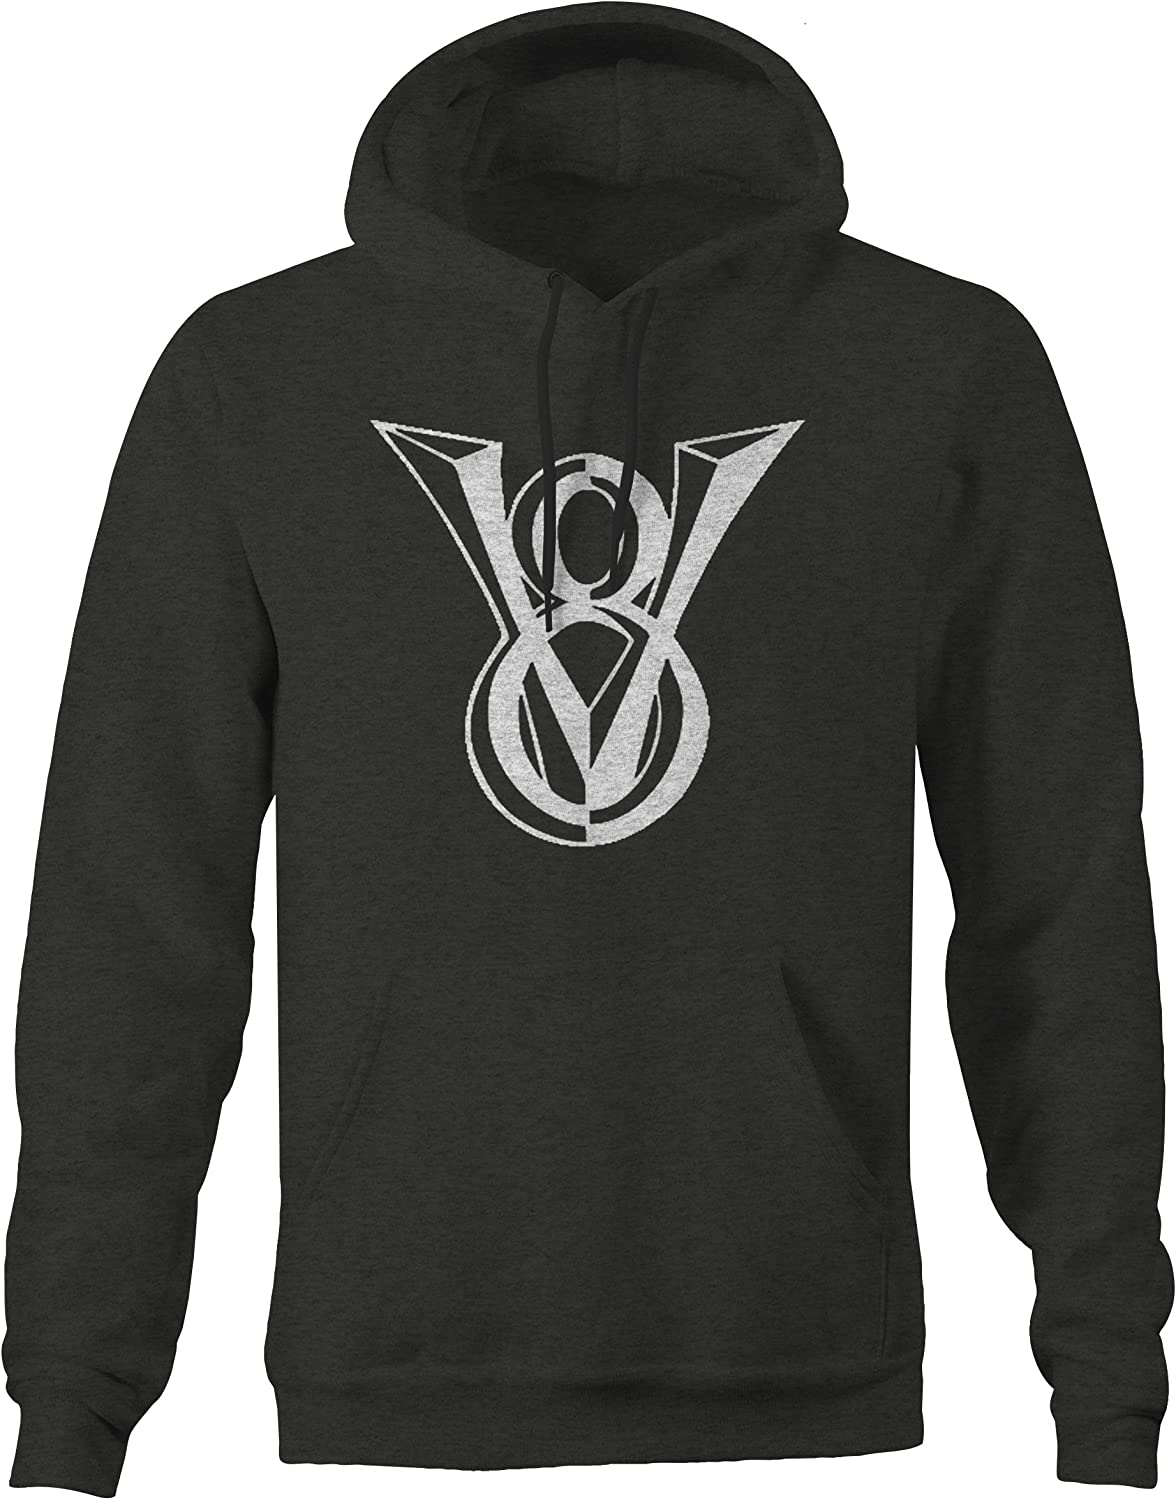 American Hotrod Classic V8 Muscle Car Truck Emblem Hoodie for Men